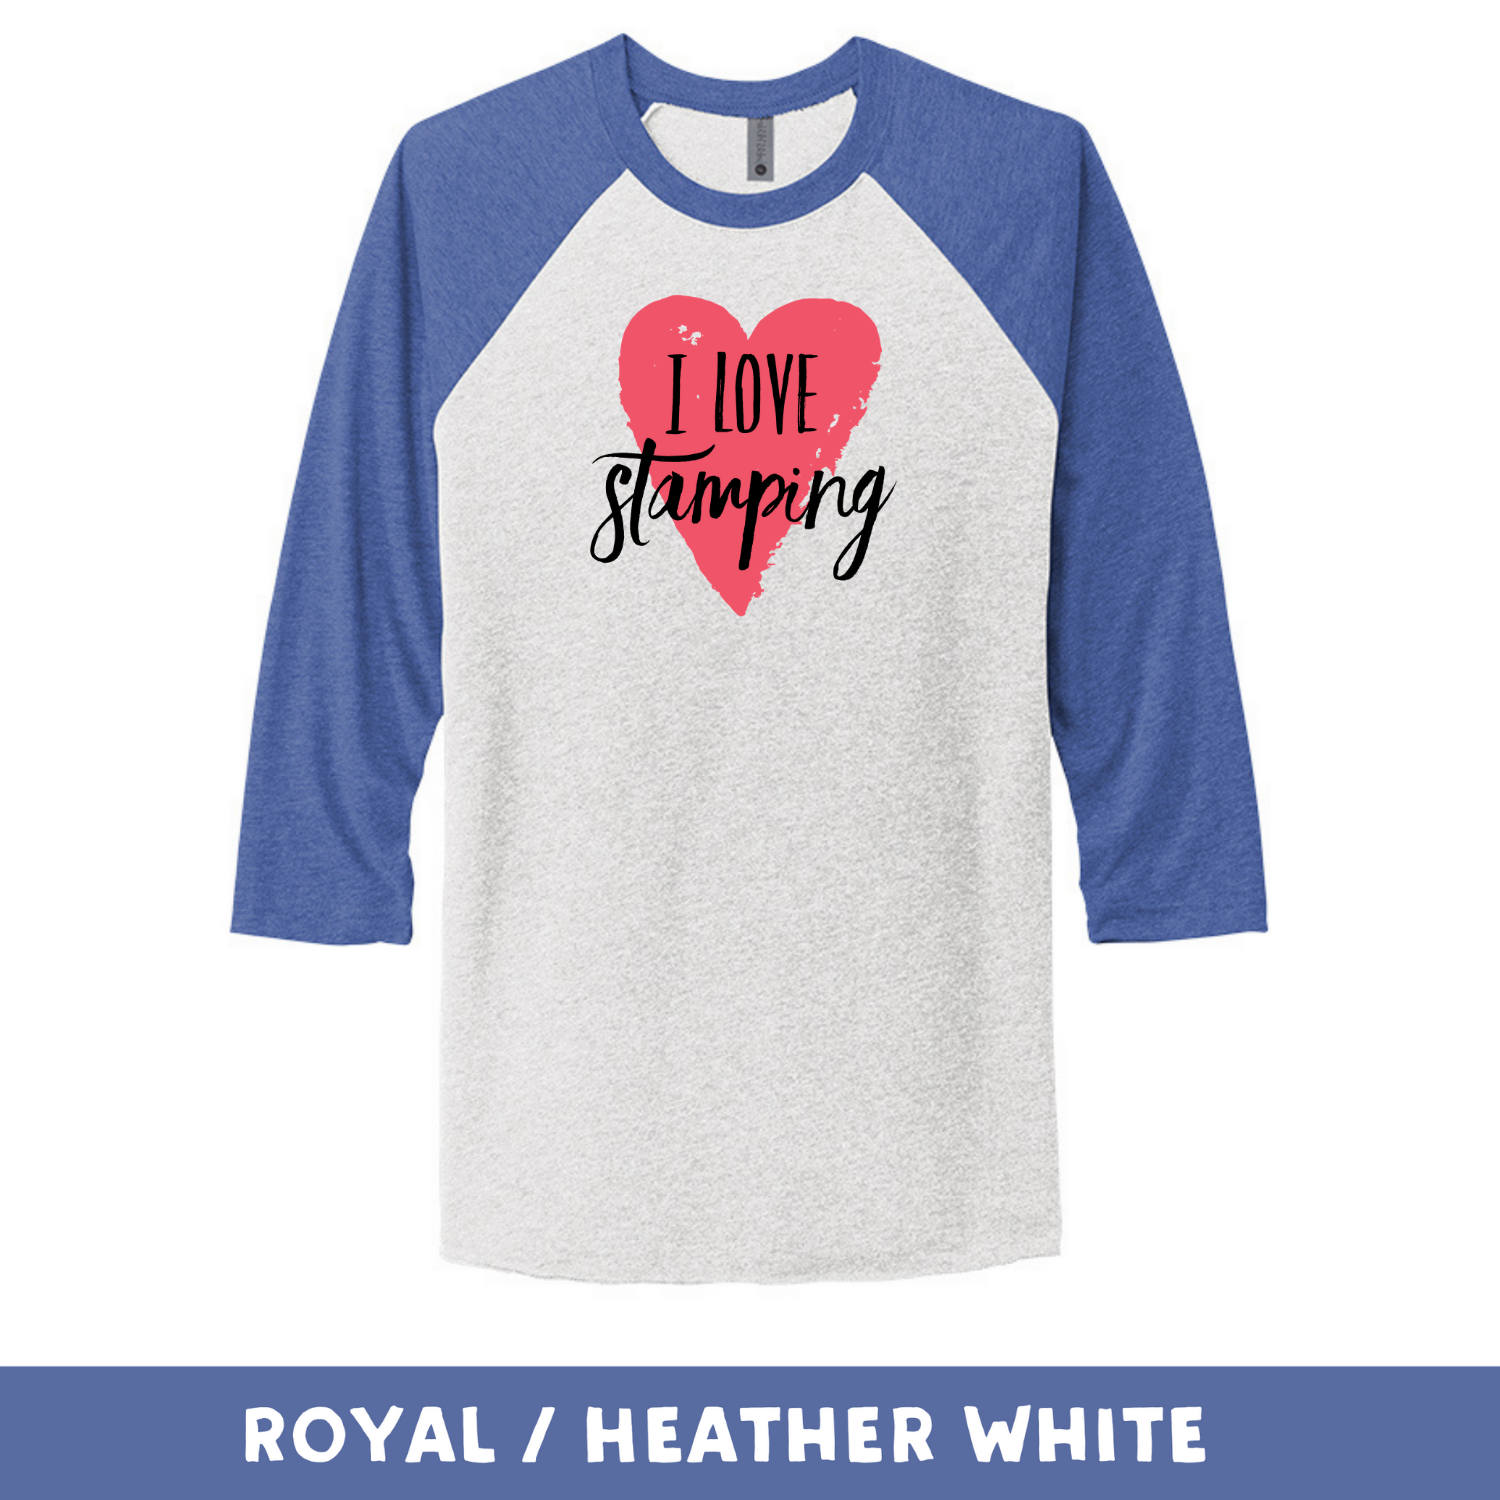 Royal Heather White - Unisex Tri-Blend 3/4 Sleeve Raglan Tee - I Love Stamping